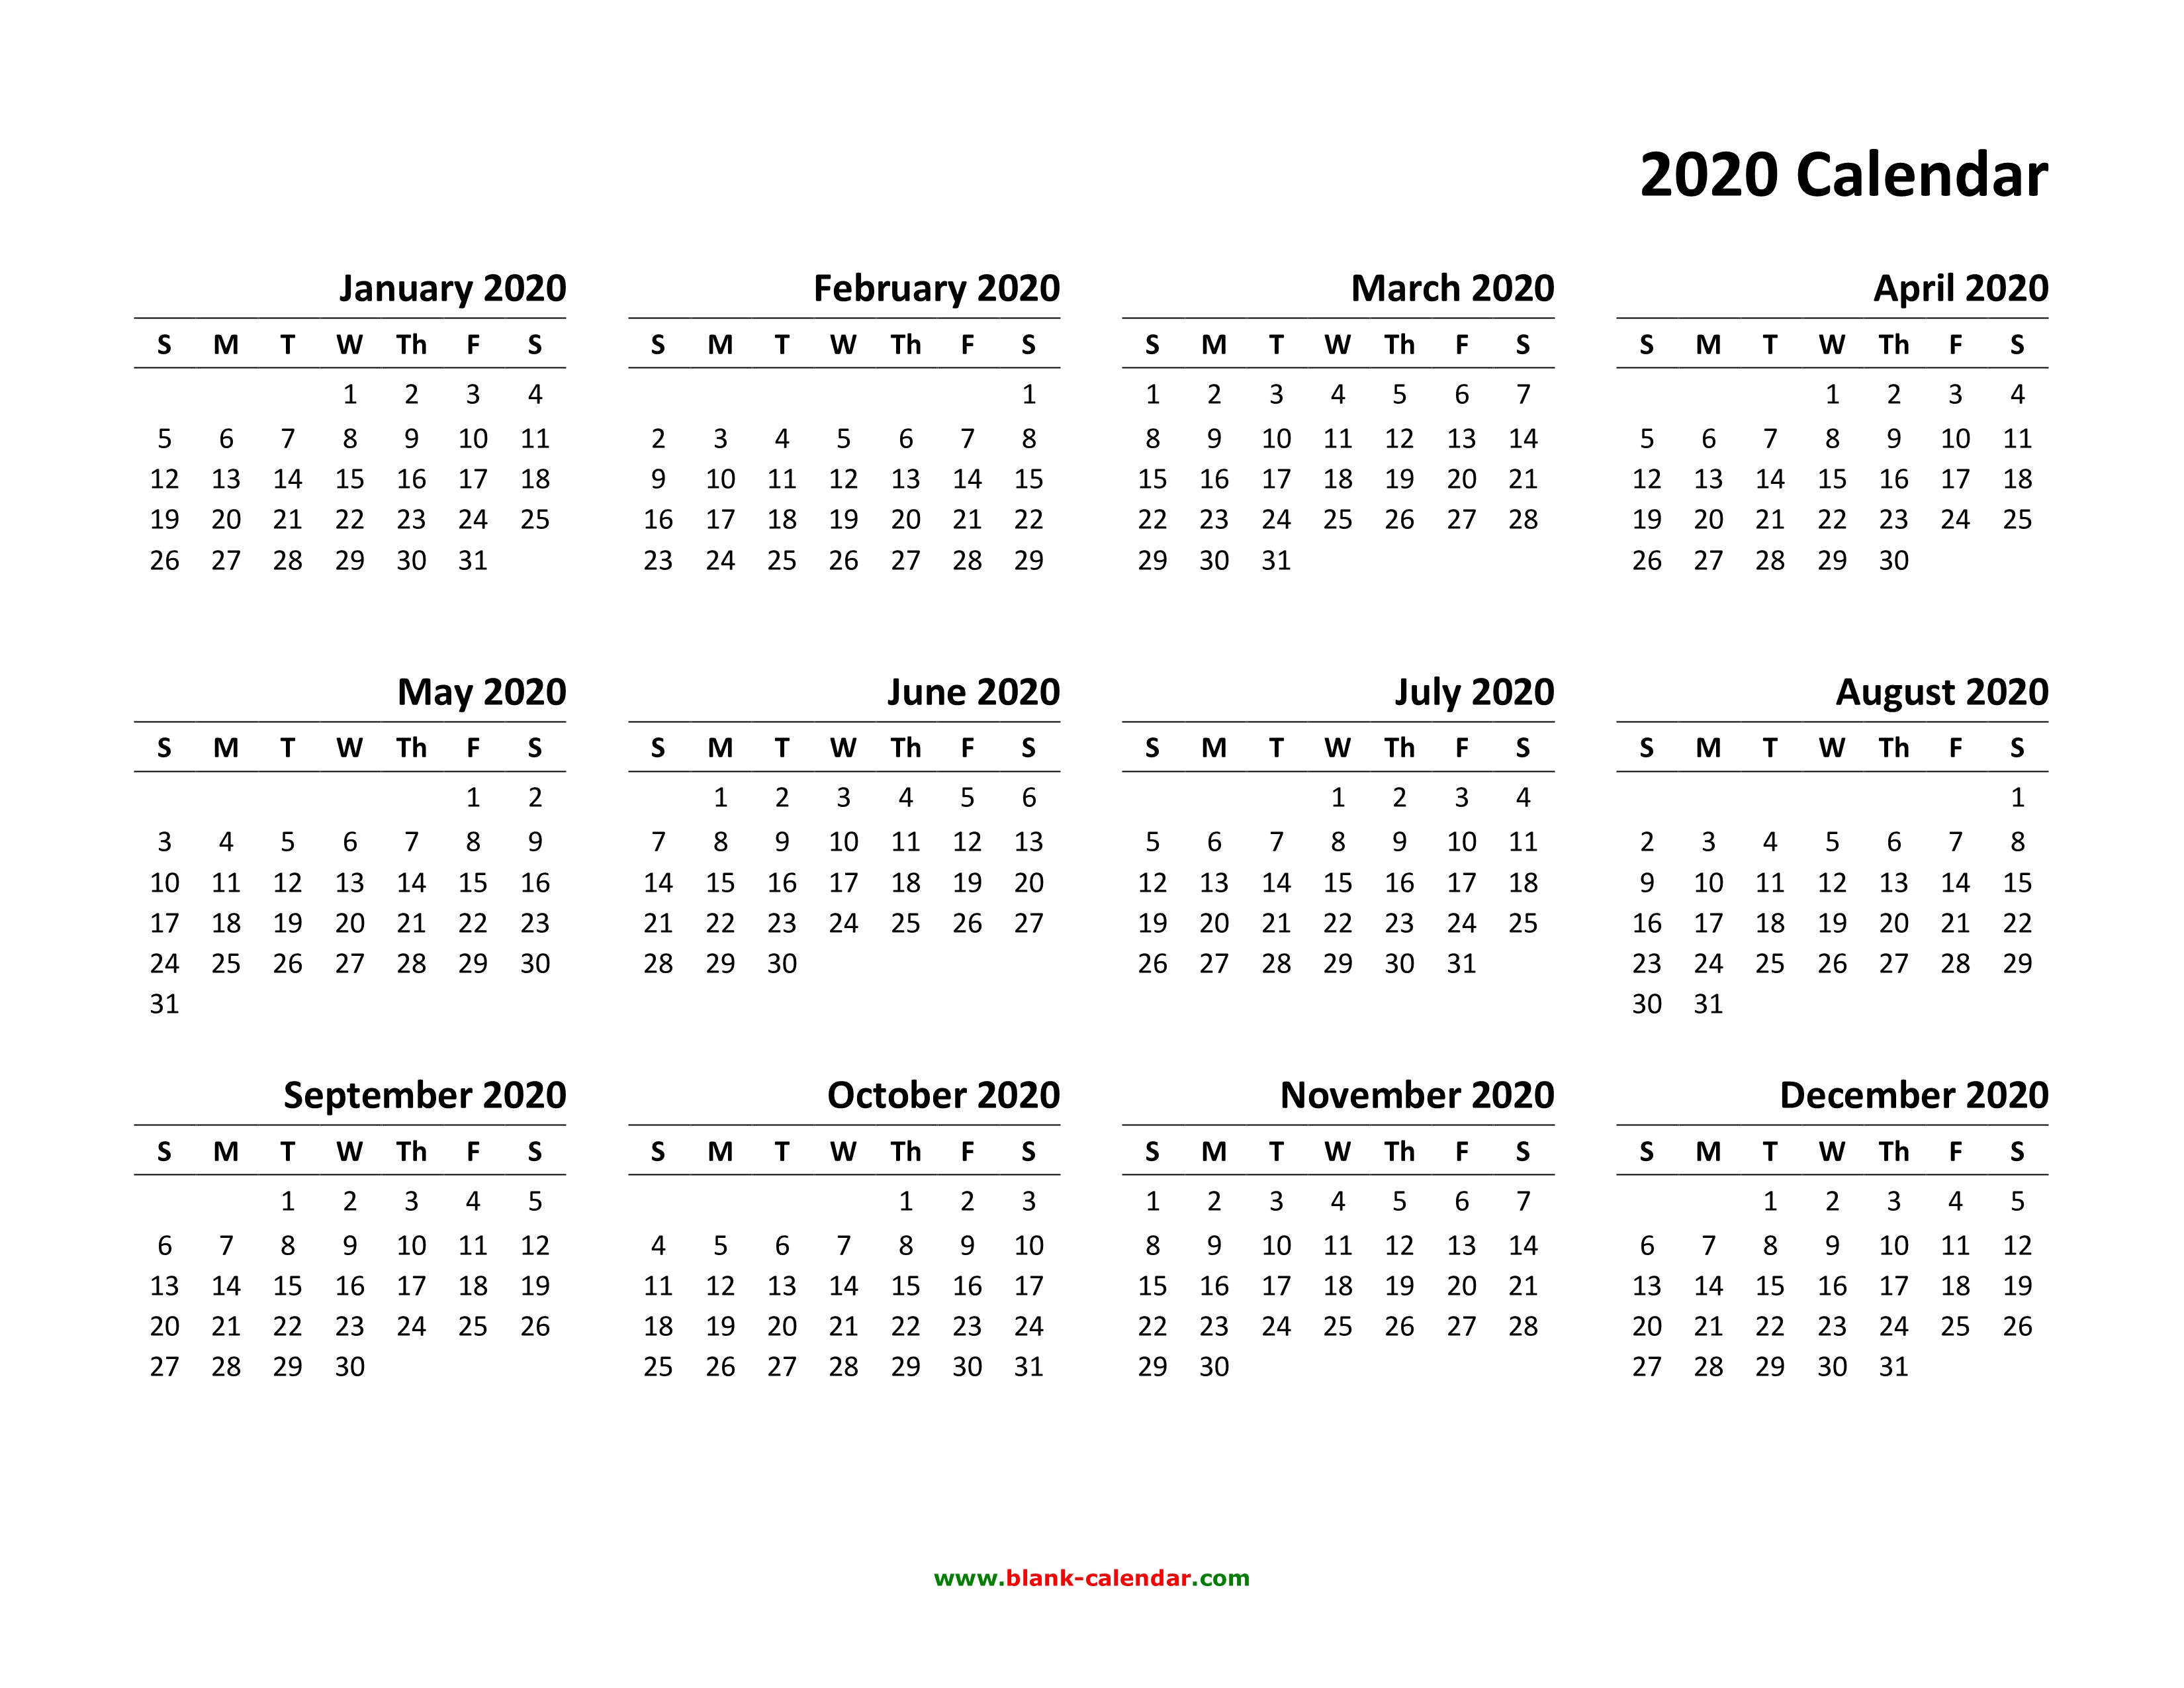 Yearly Calendar 2020 | Free Download And Print pertaining to Free Calendar 2020 Dont Have To Download